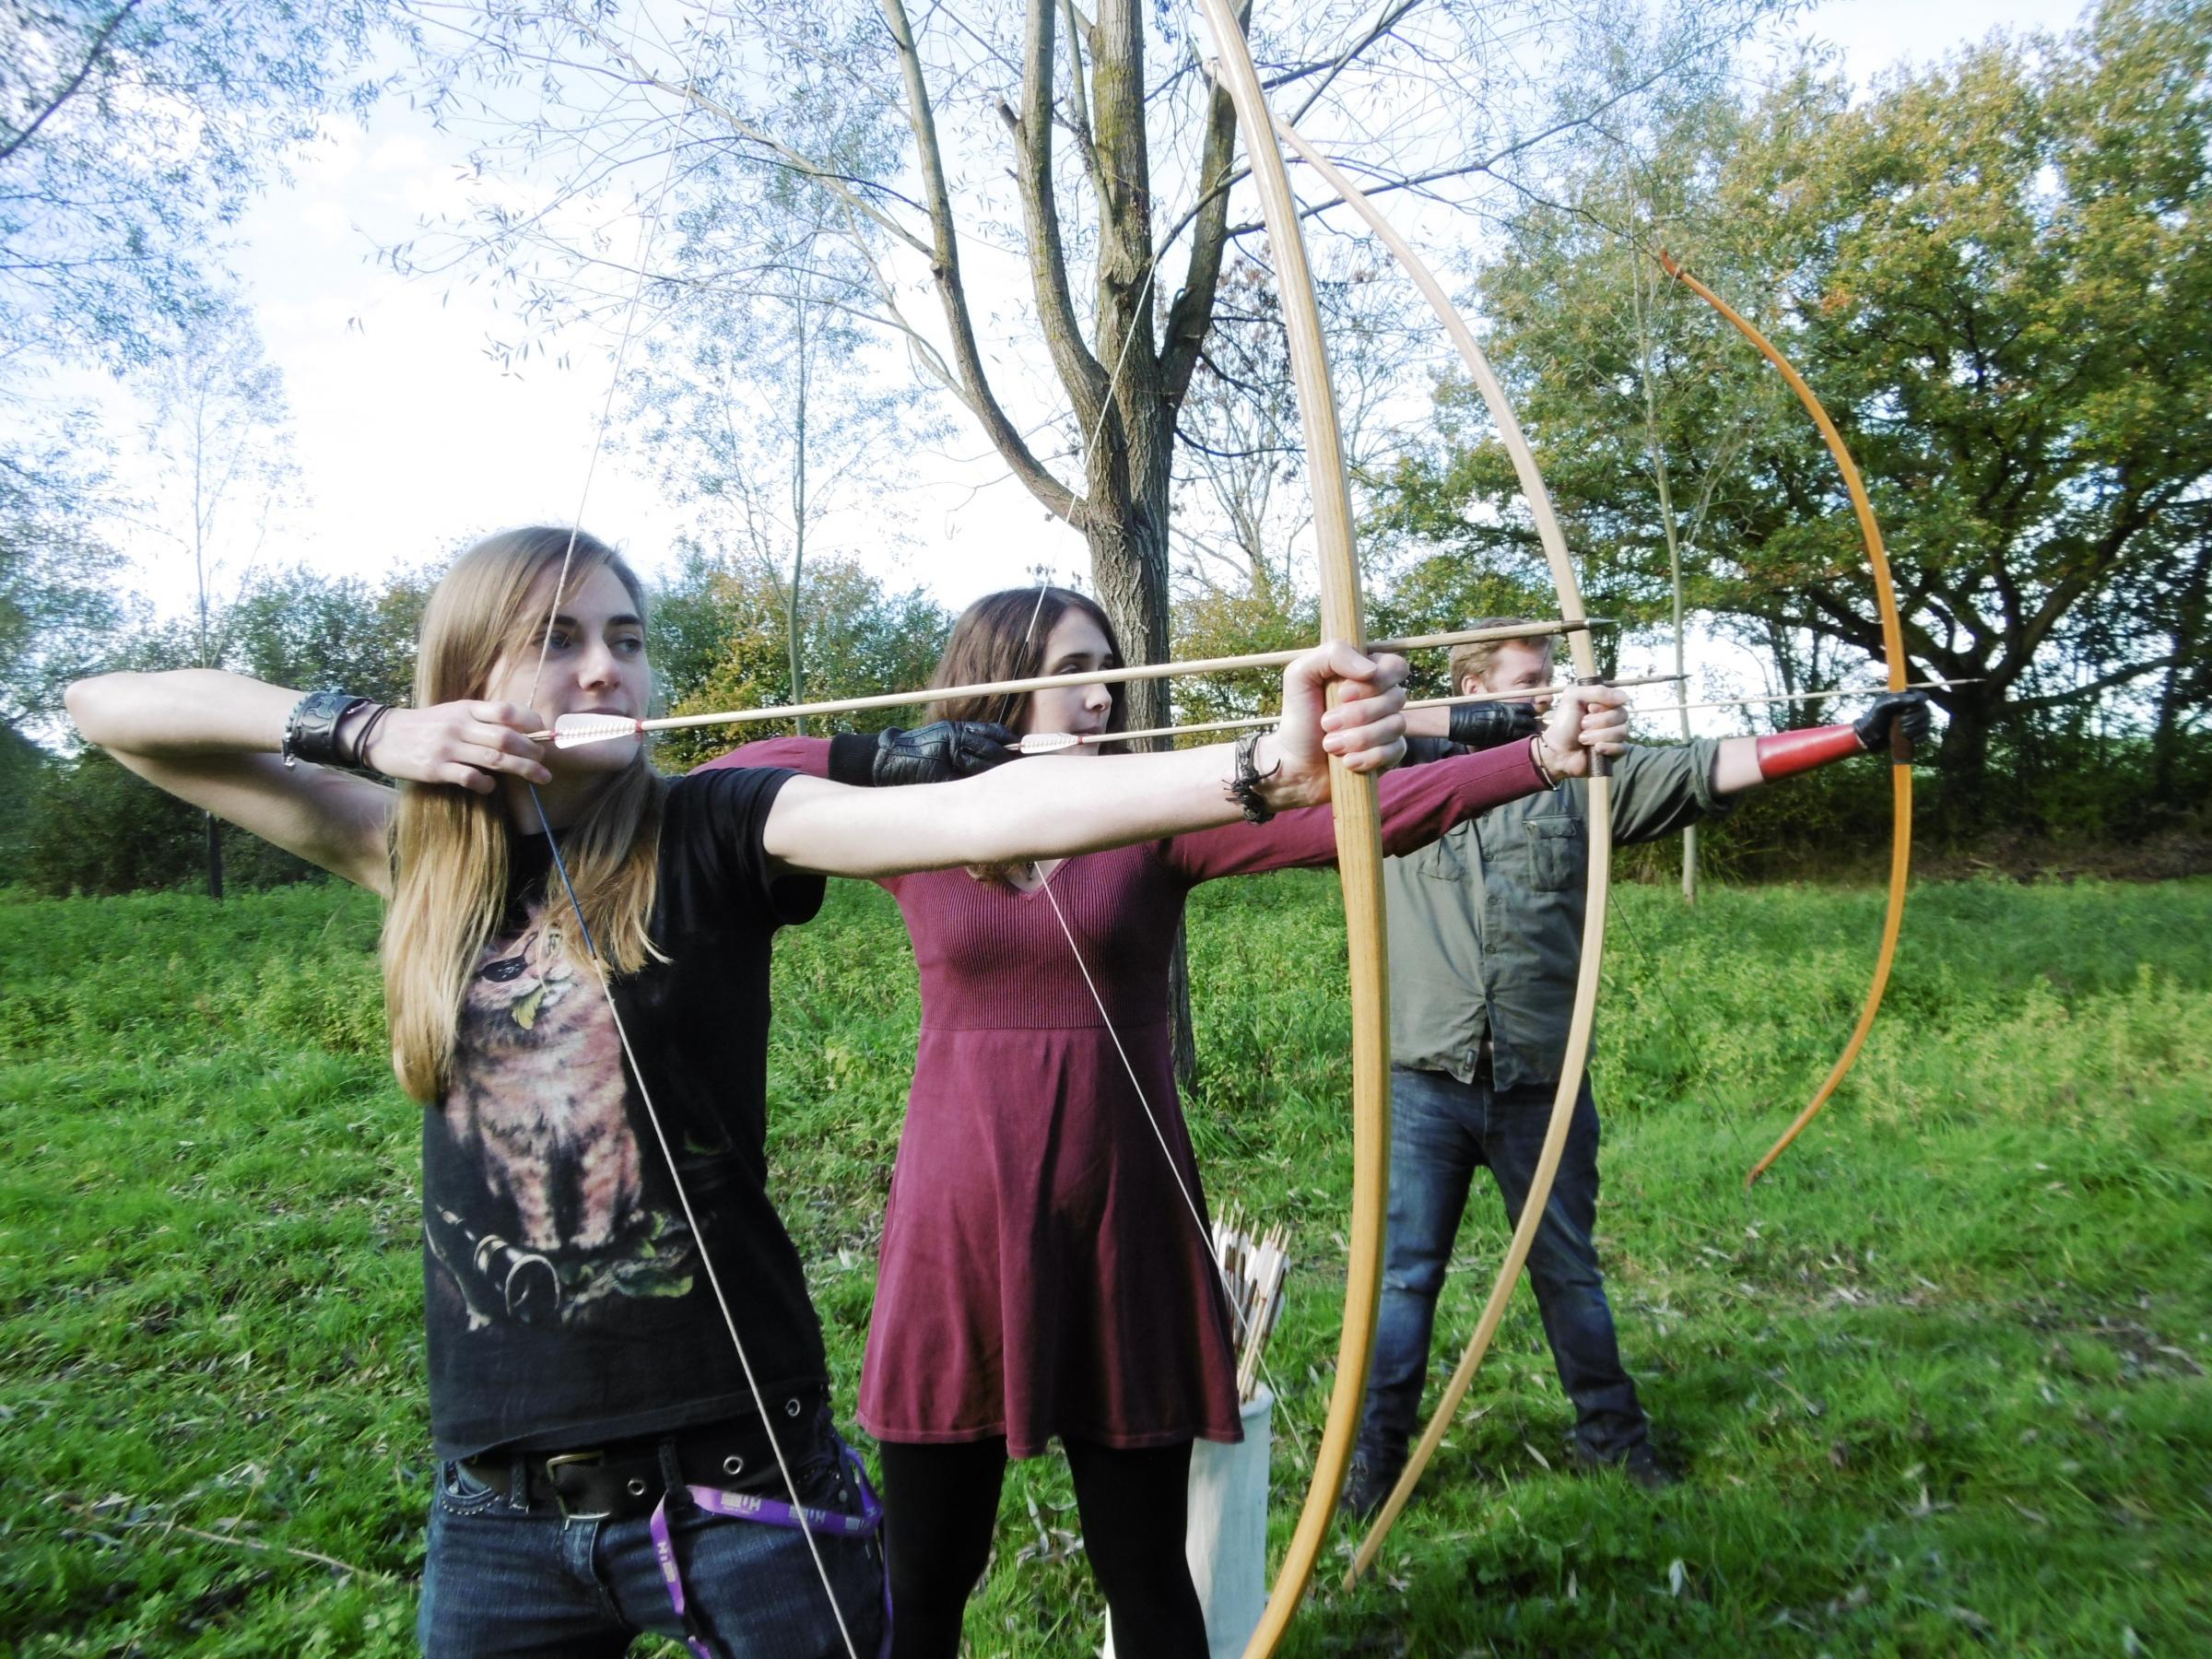 Have-a-go Archery at Hatfield Forest